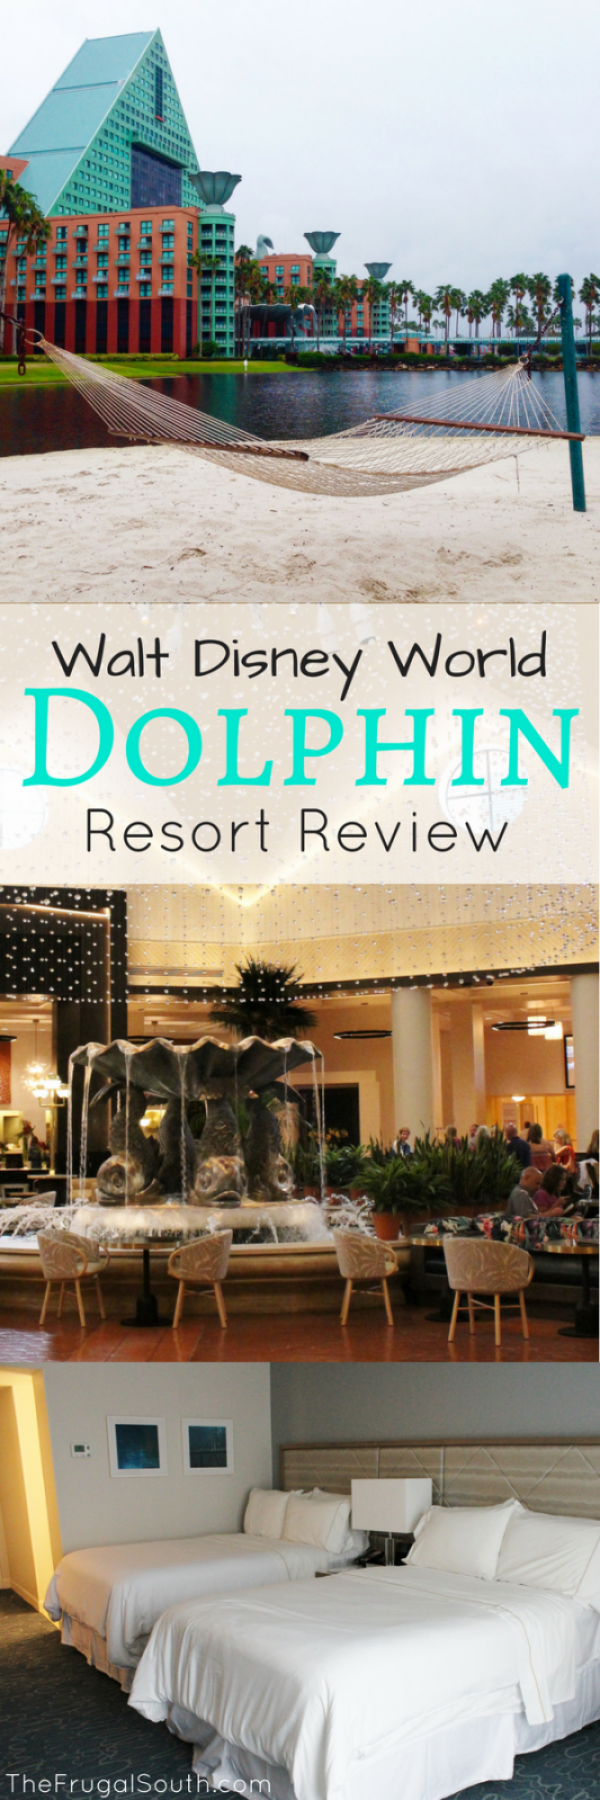 Pros and cons of the Walt Disney World Dolphin, a non-Disney resort located on Disney property! There is so much to know about this unique hotel. A thorough resort review of the Disney Dolphin. #disneyworld